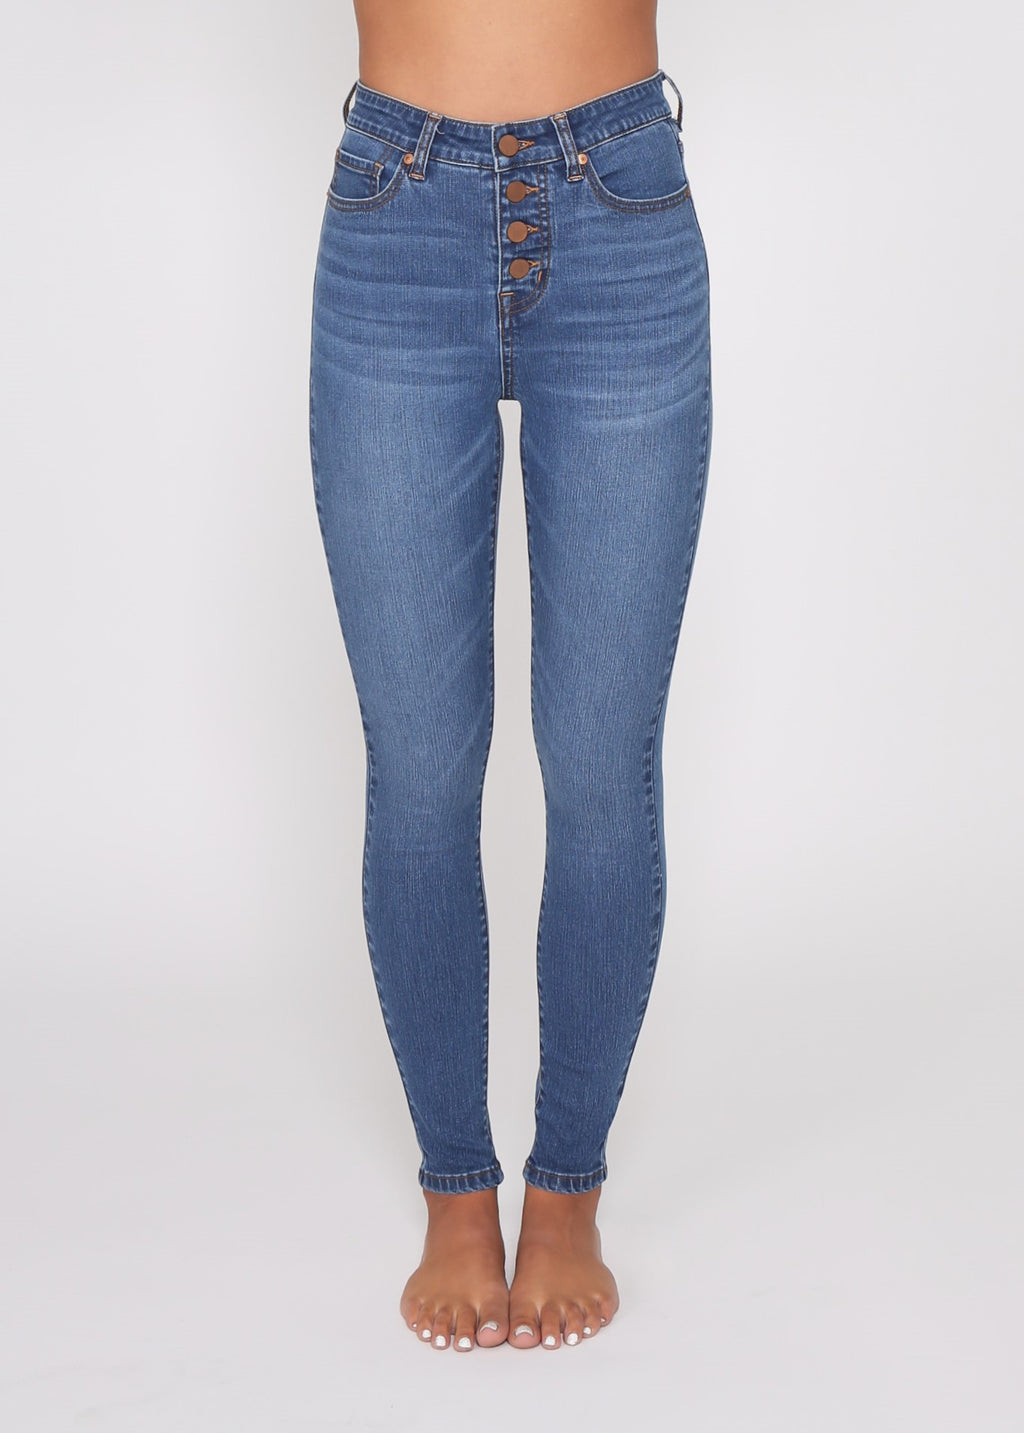 JUST IN - ADELE SKINNY JEAN - BLUE